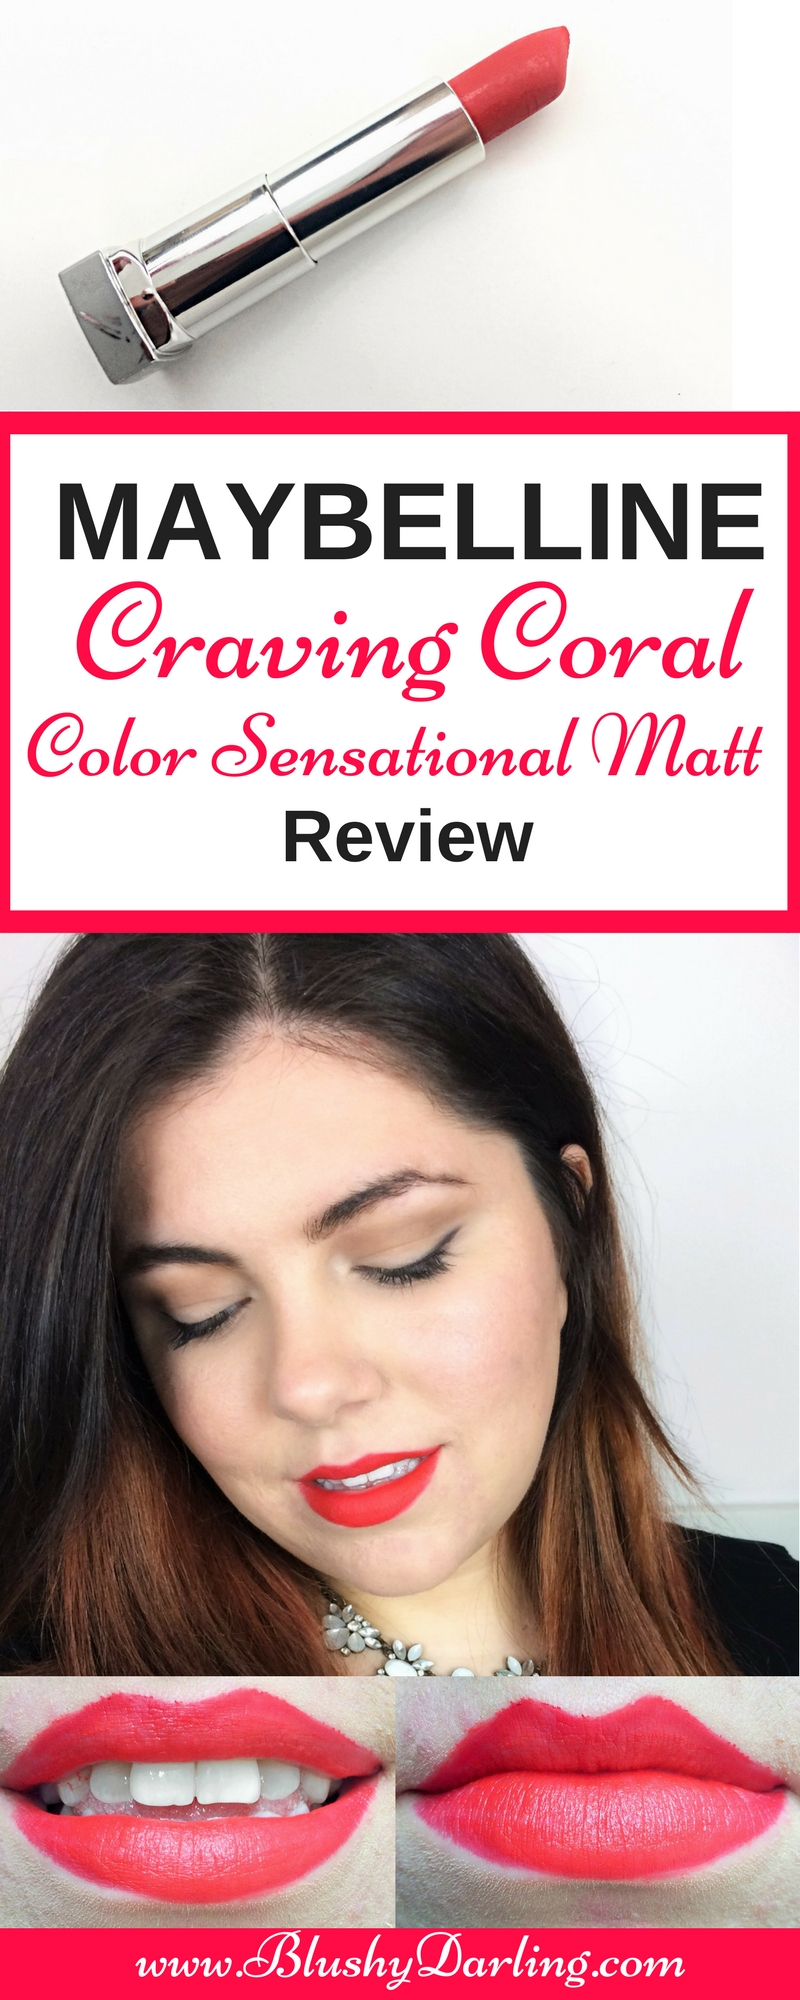 Maybelline Colour Sensational Matte Craving Coral (16)